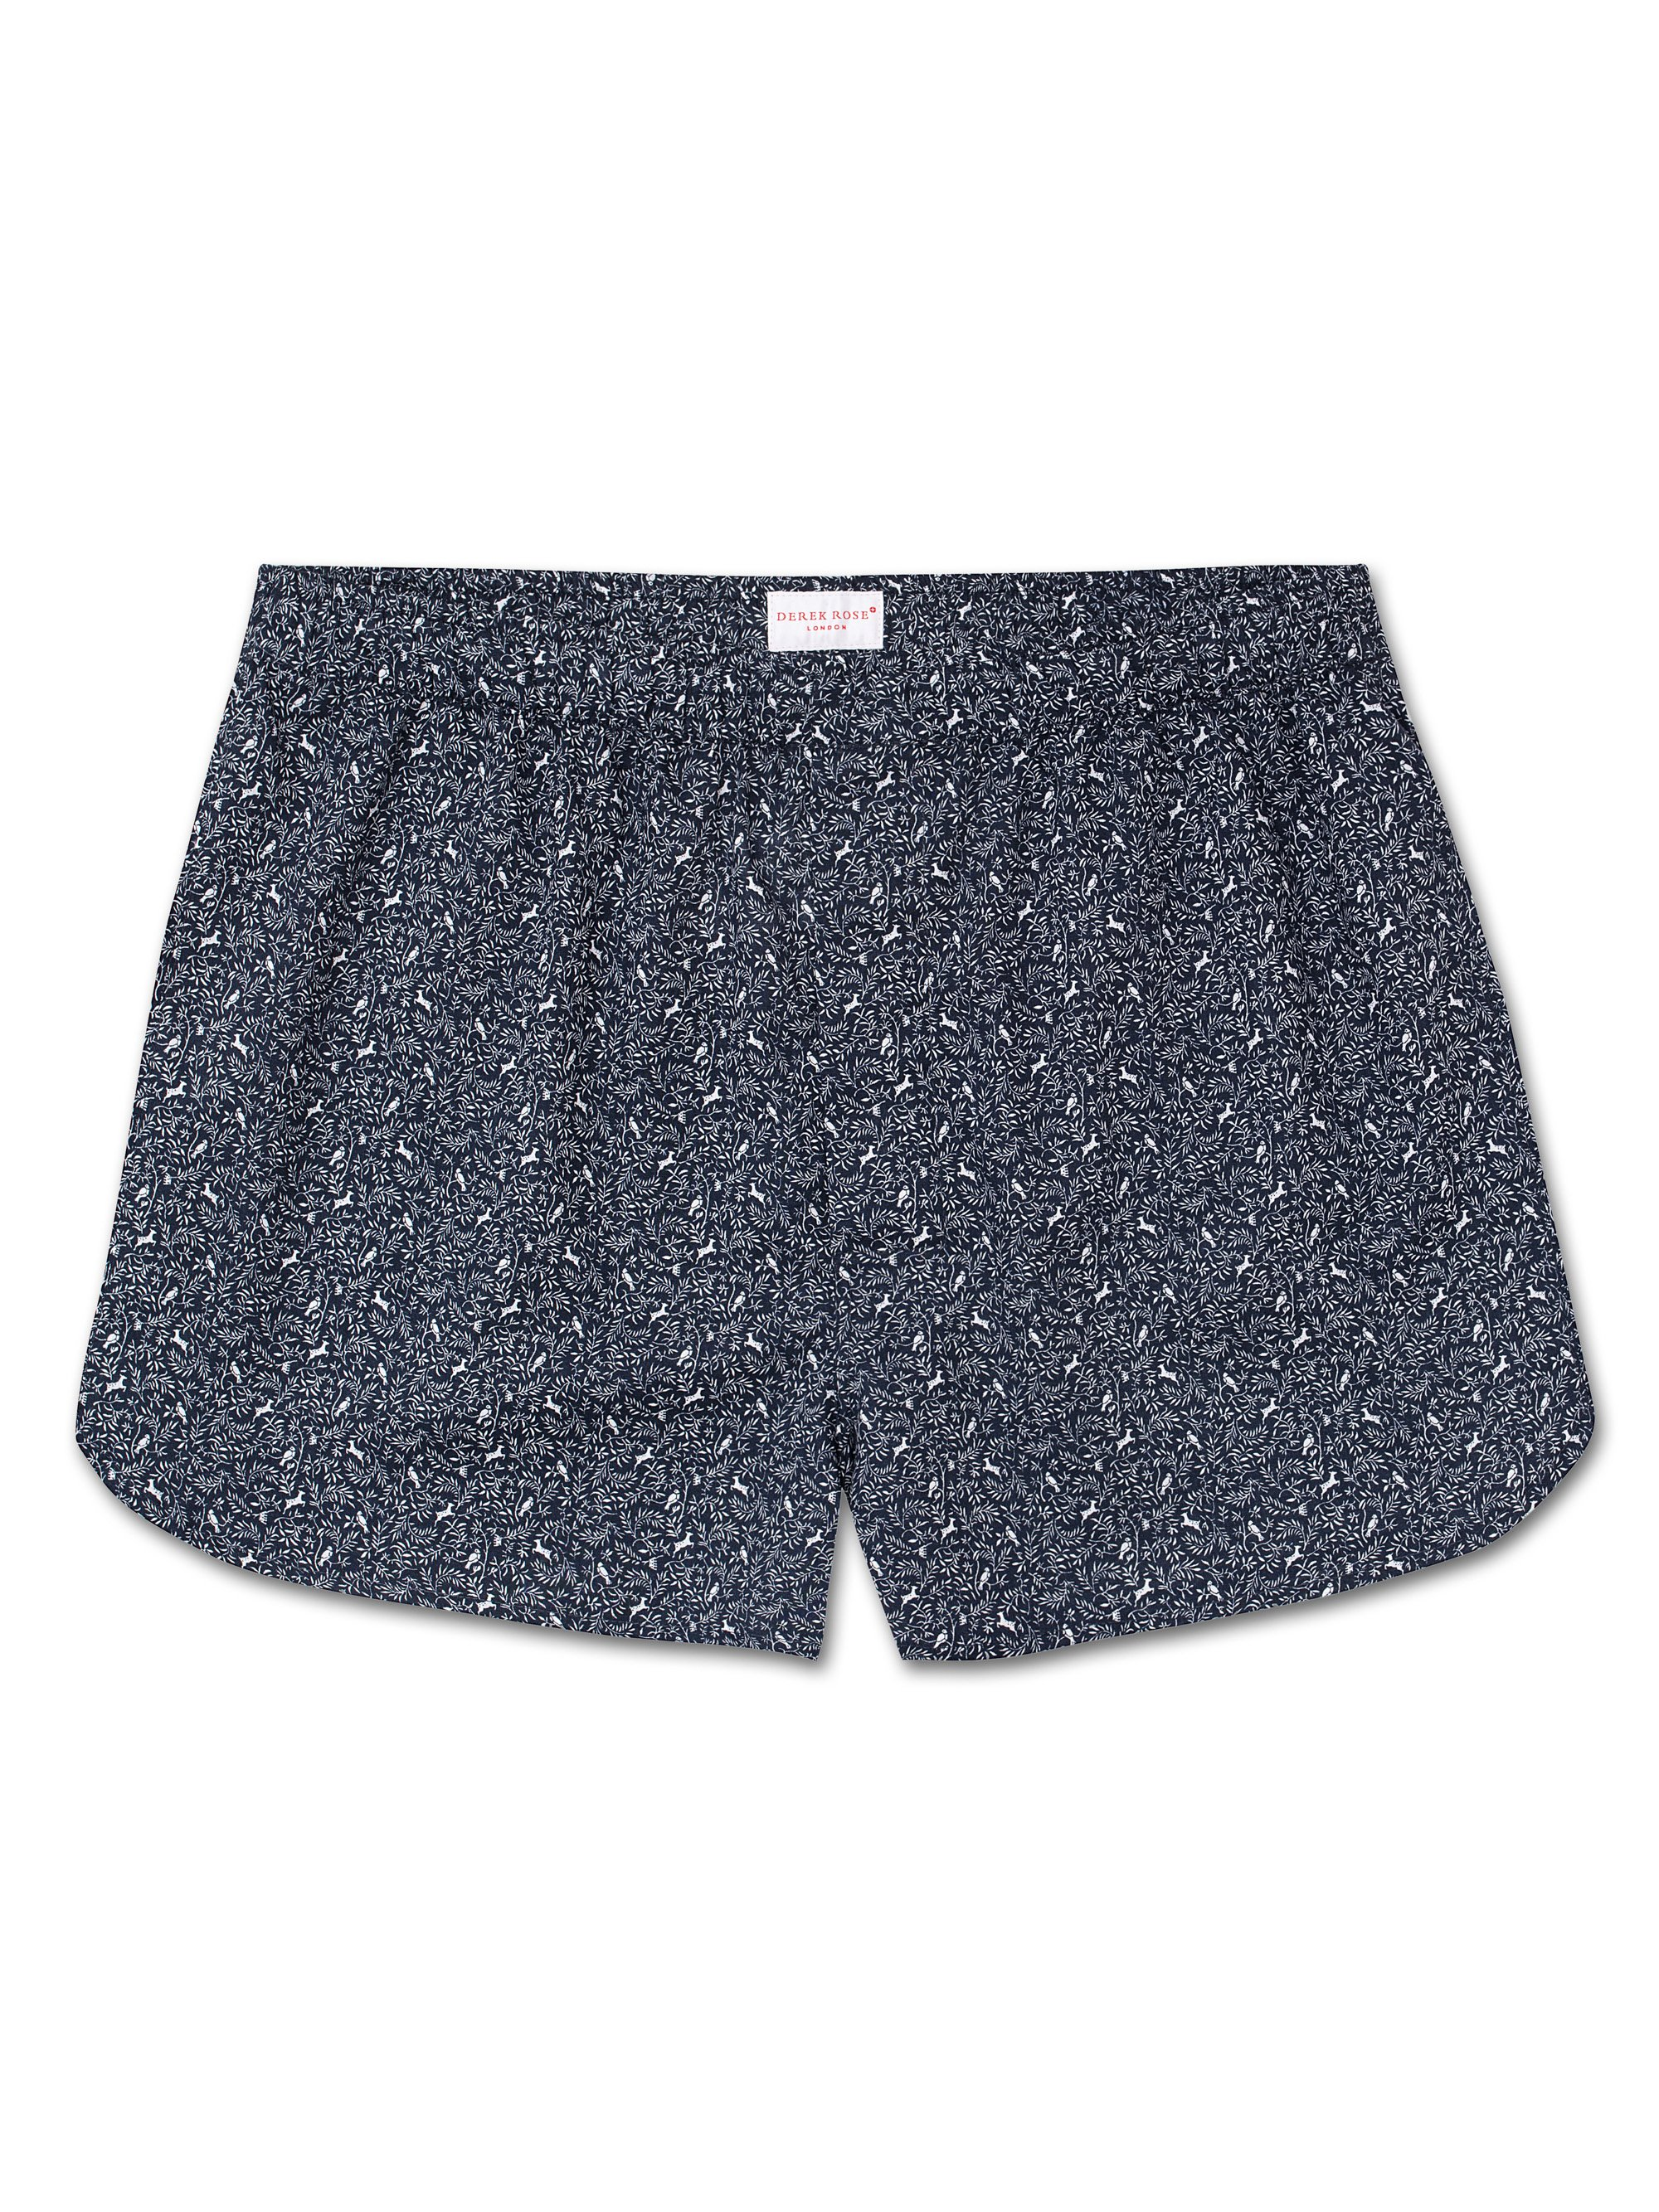 Men's Modern Fit Boxer Shorts Dixie 3 Cotton Batiste Navy